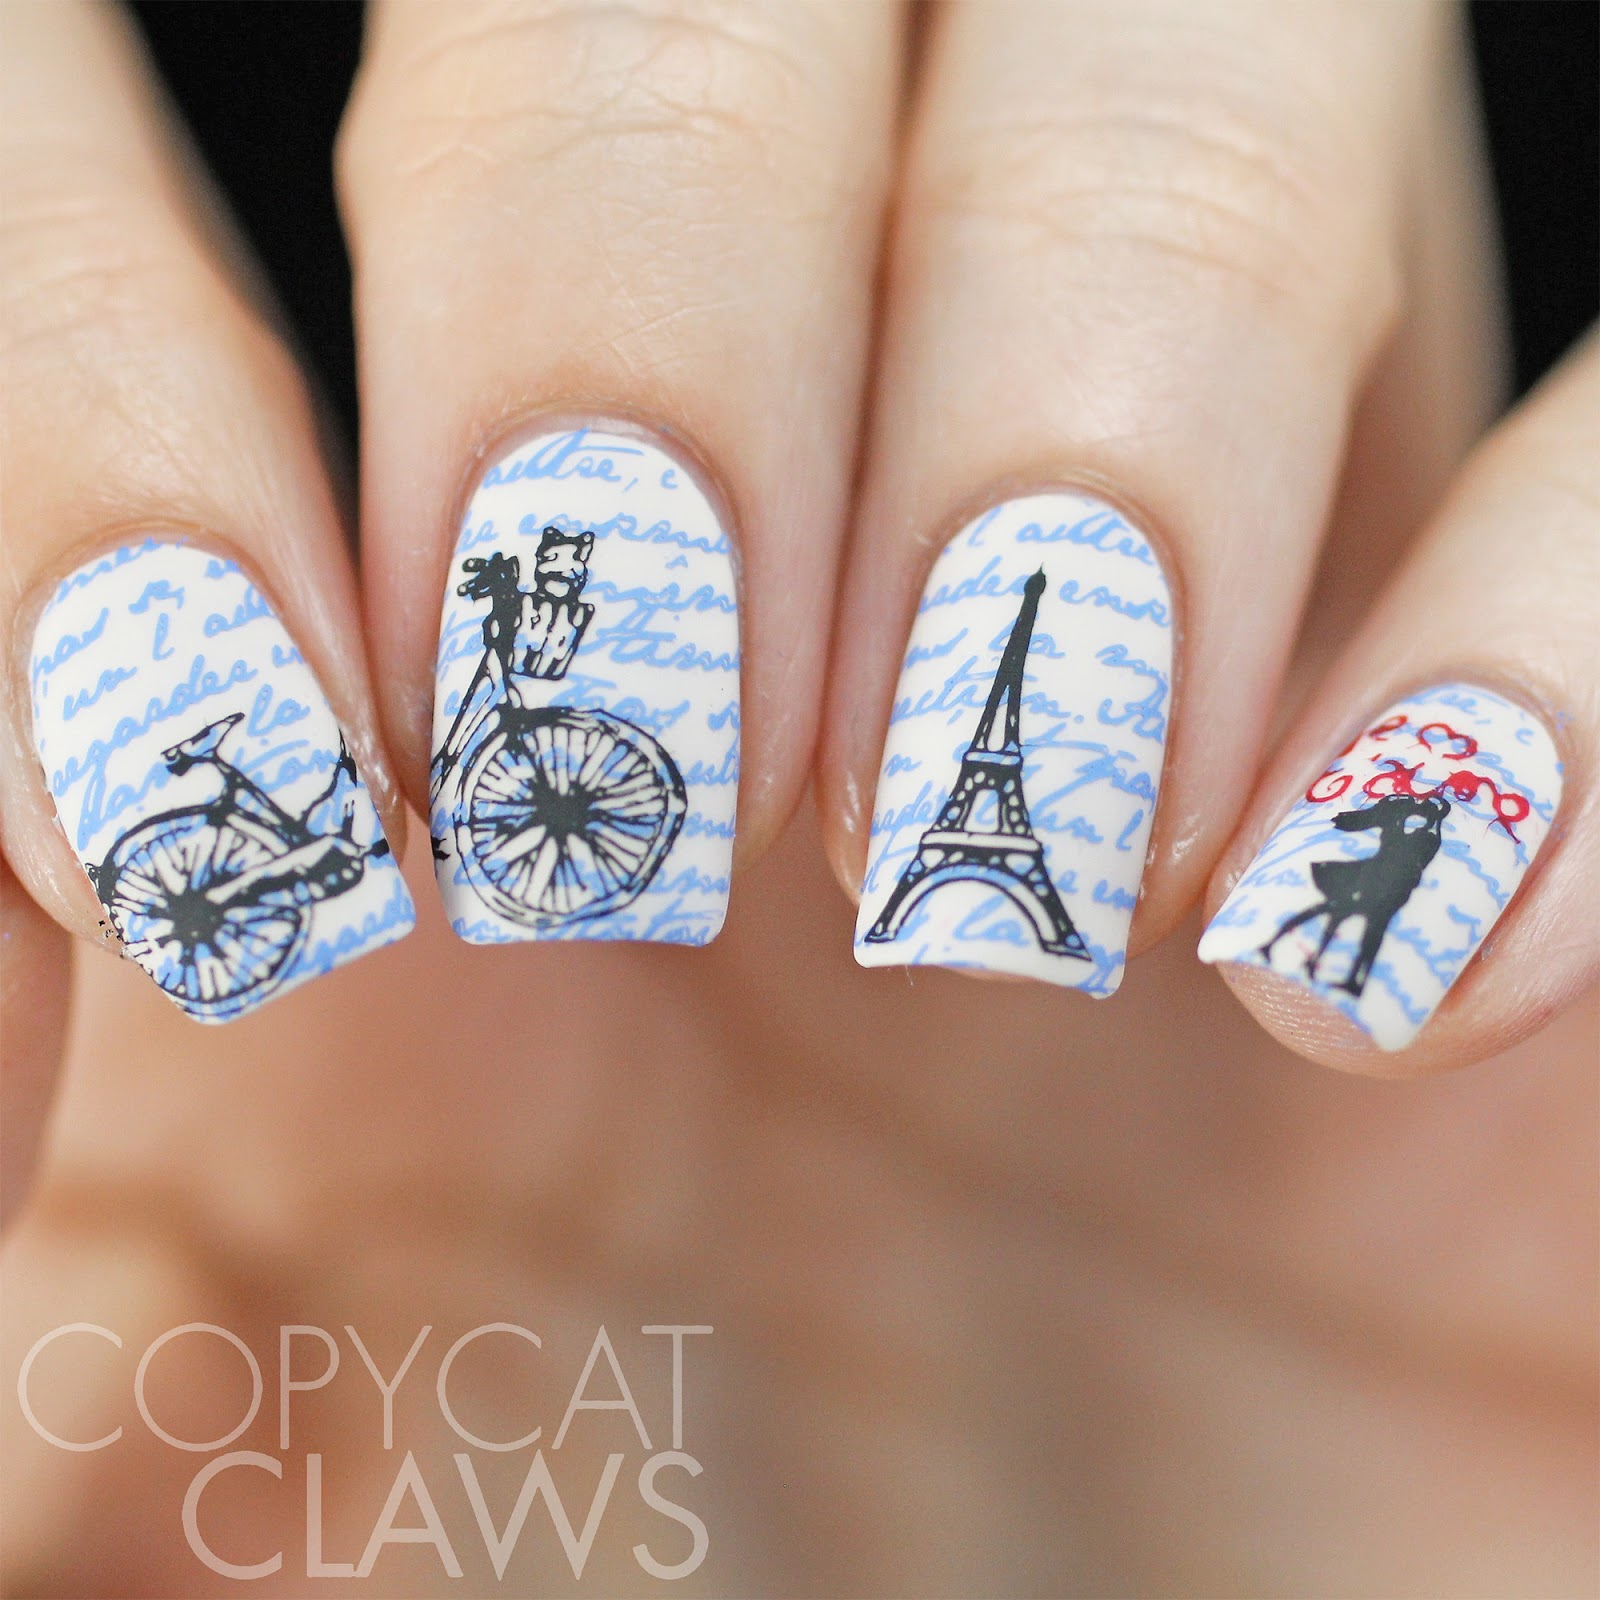 Copycat Claws Uberchic Beauty Paris In Love Stamping Plate